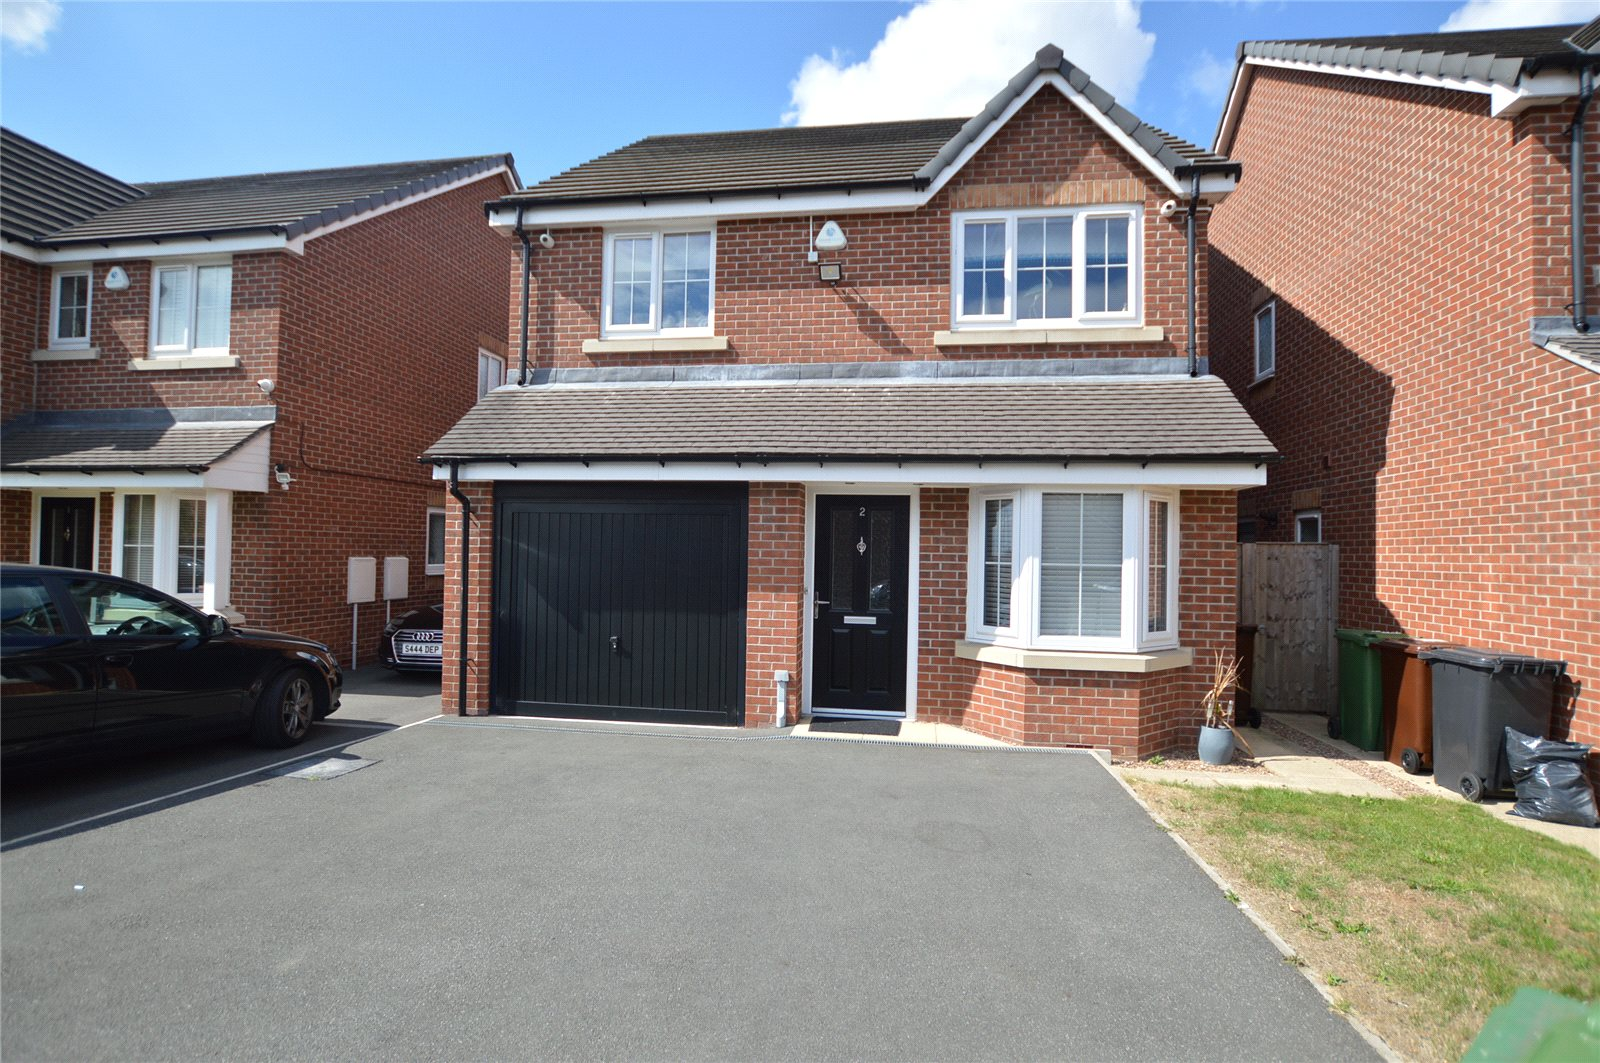 Property for sale in Morley, exterior, red brick detached home